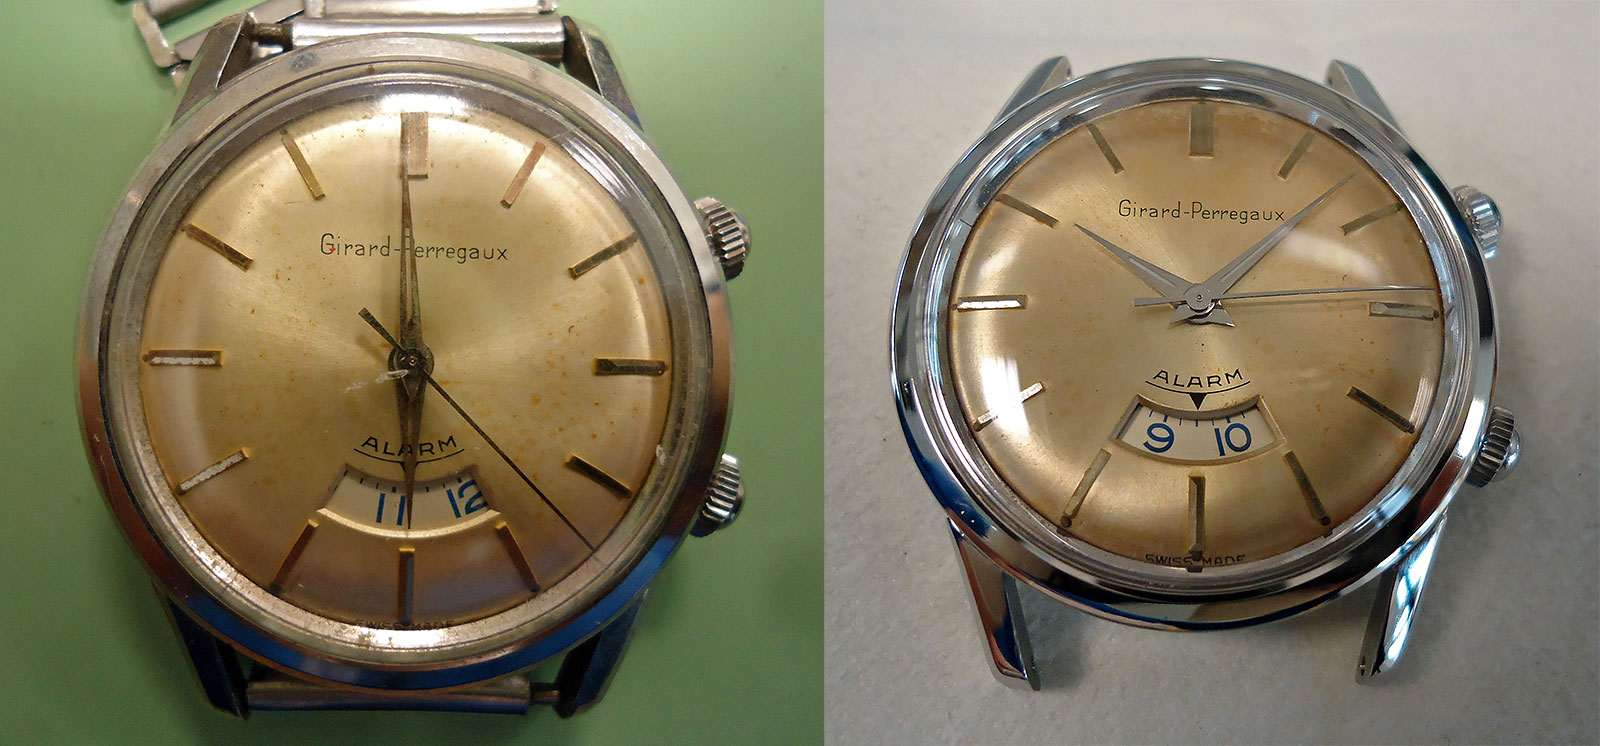 Girard Perregaux alarm restoration before after